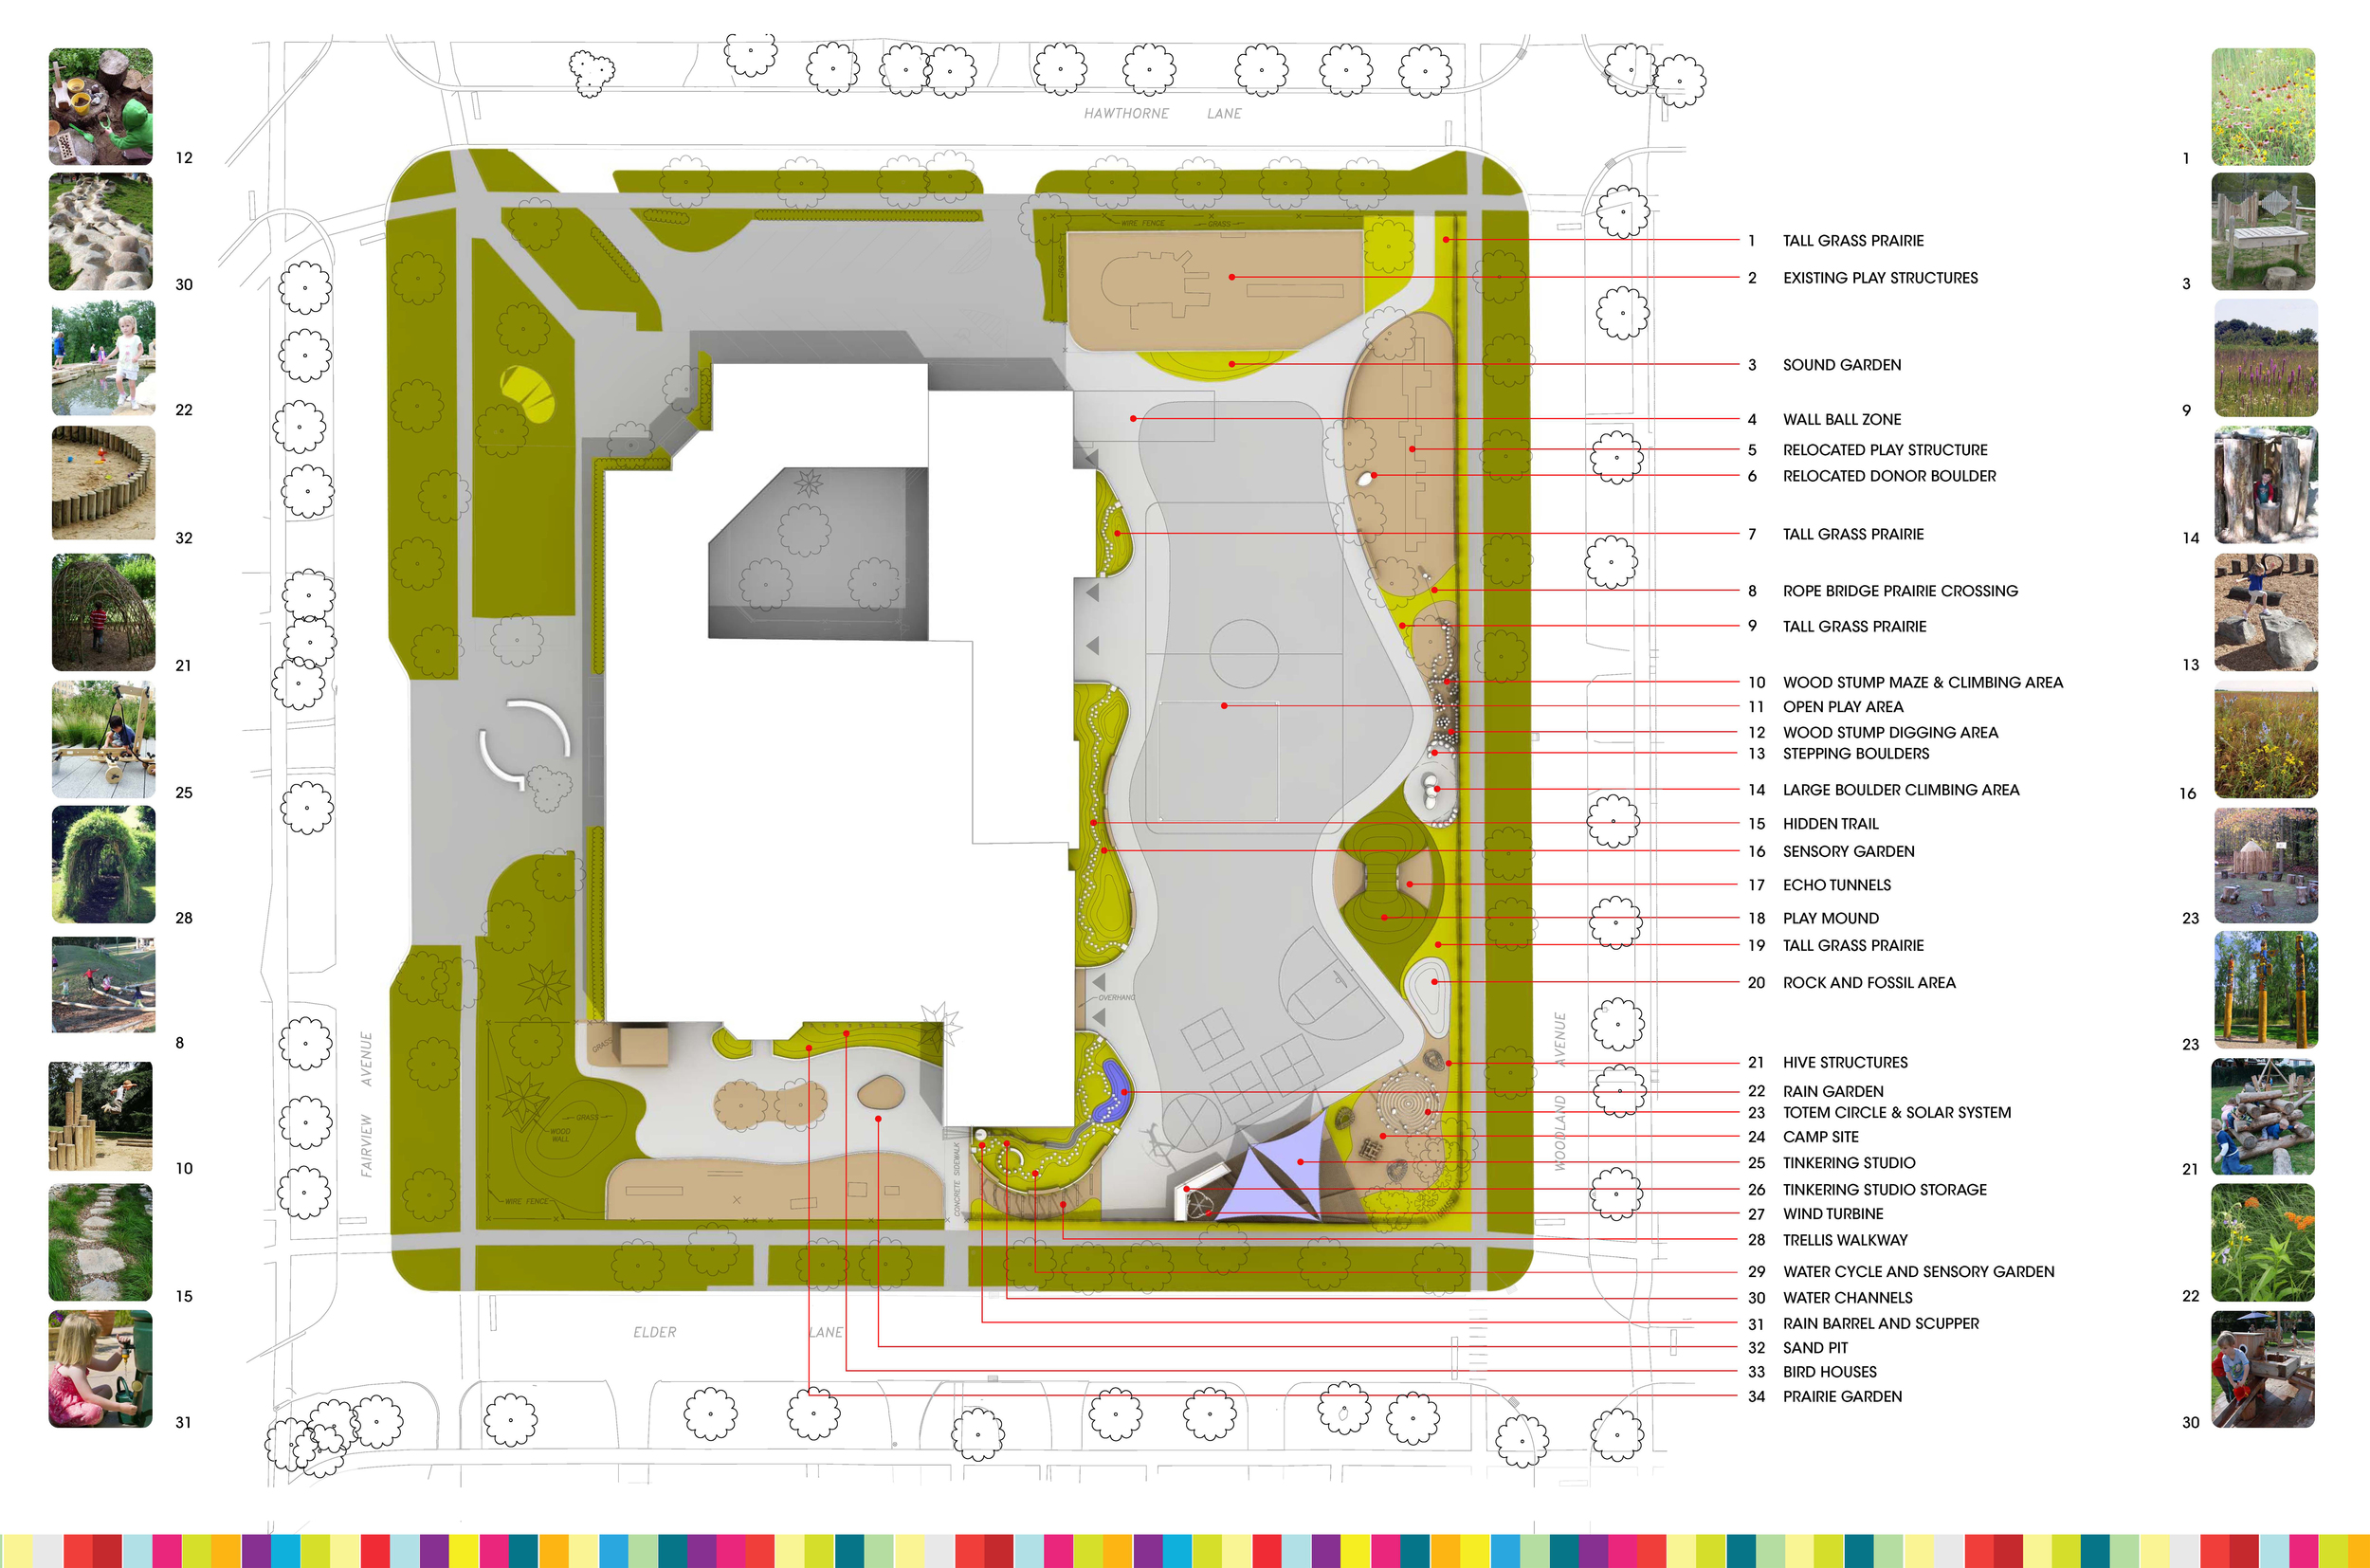 Greeley_site plan _composite_CROPPED.jpg